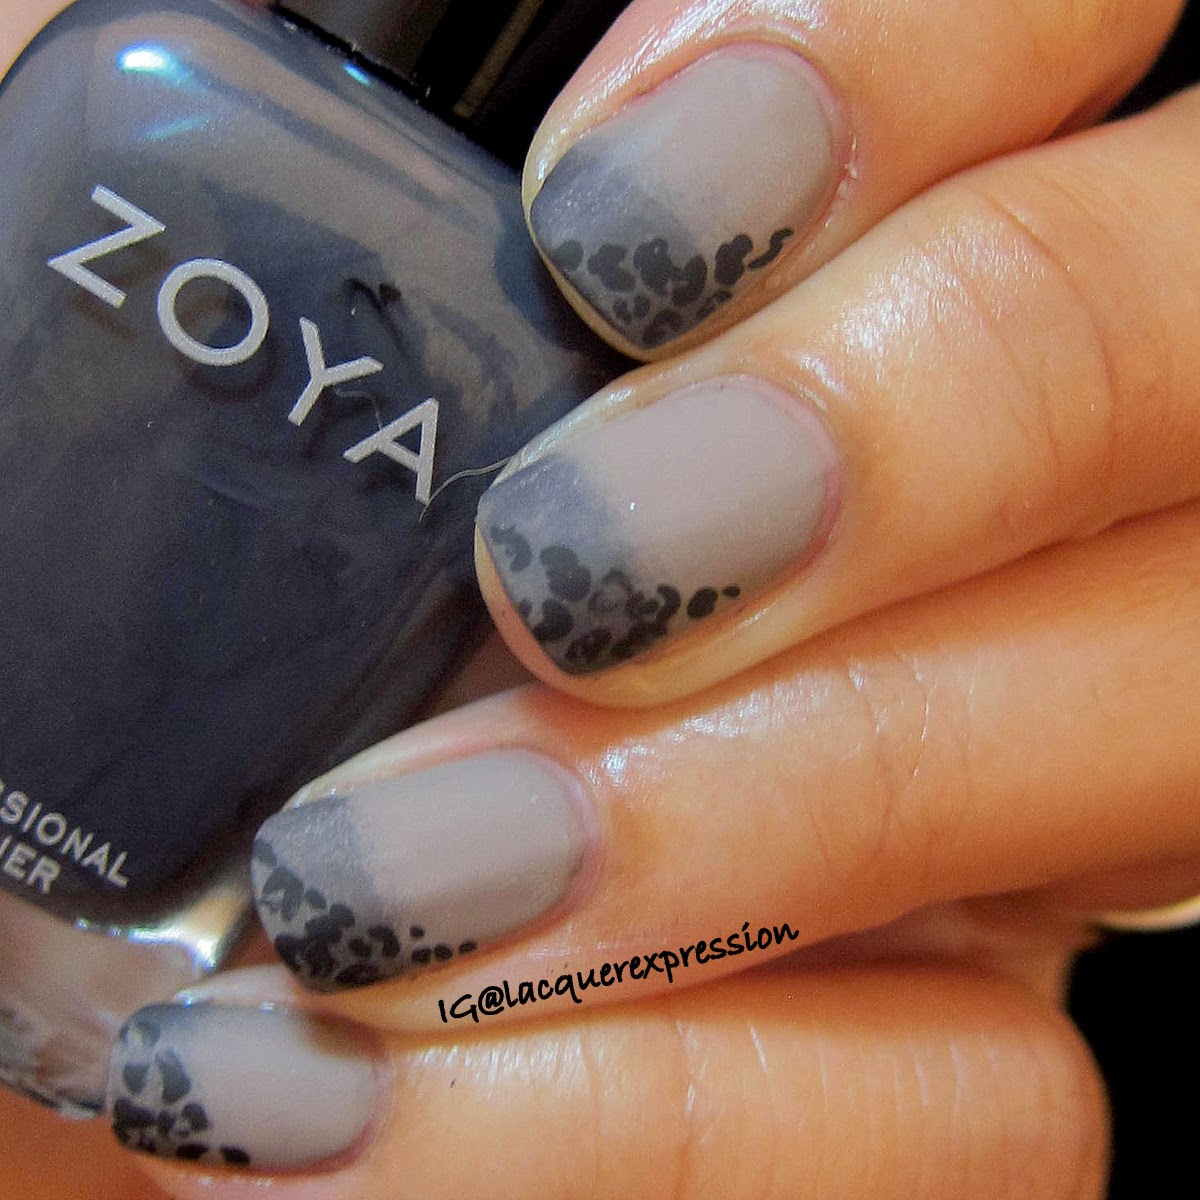 Sideway leopard print nail art manicure over gradient using Genevieve by Zoya